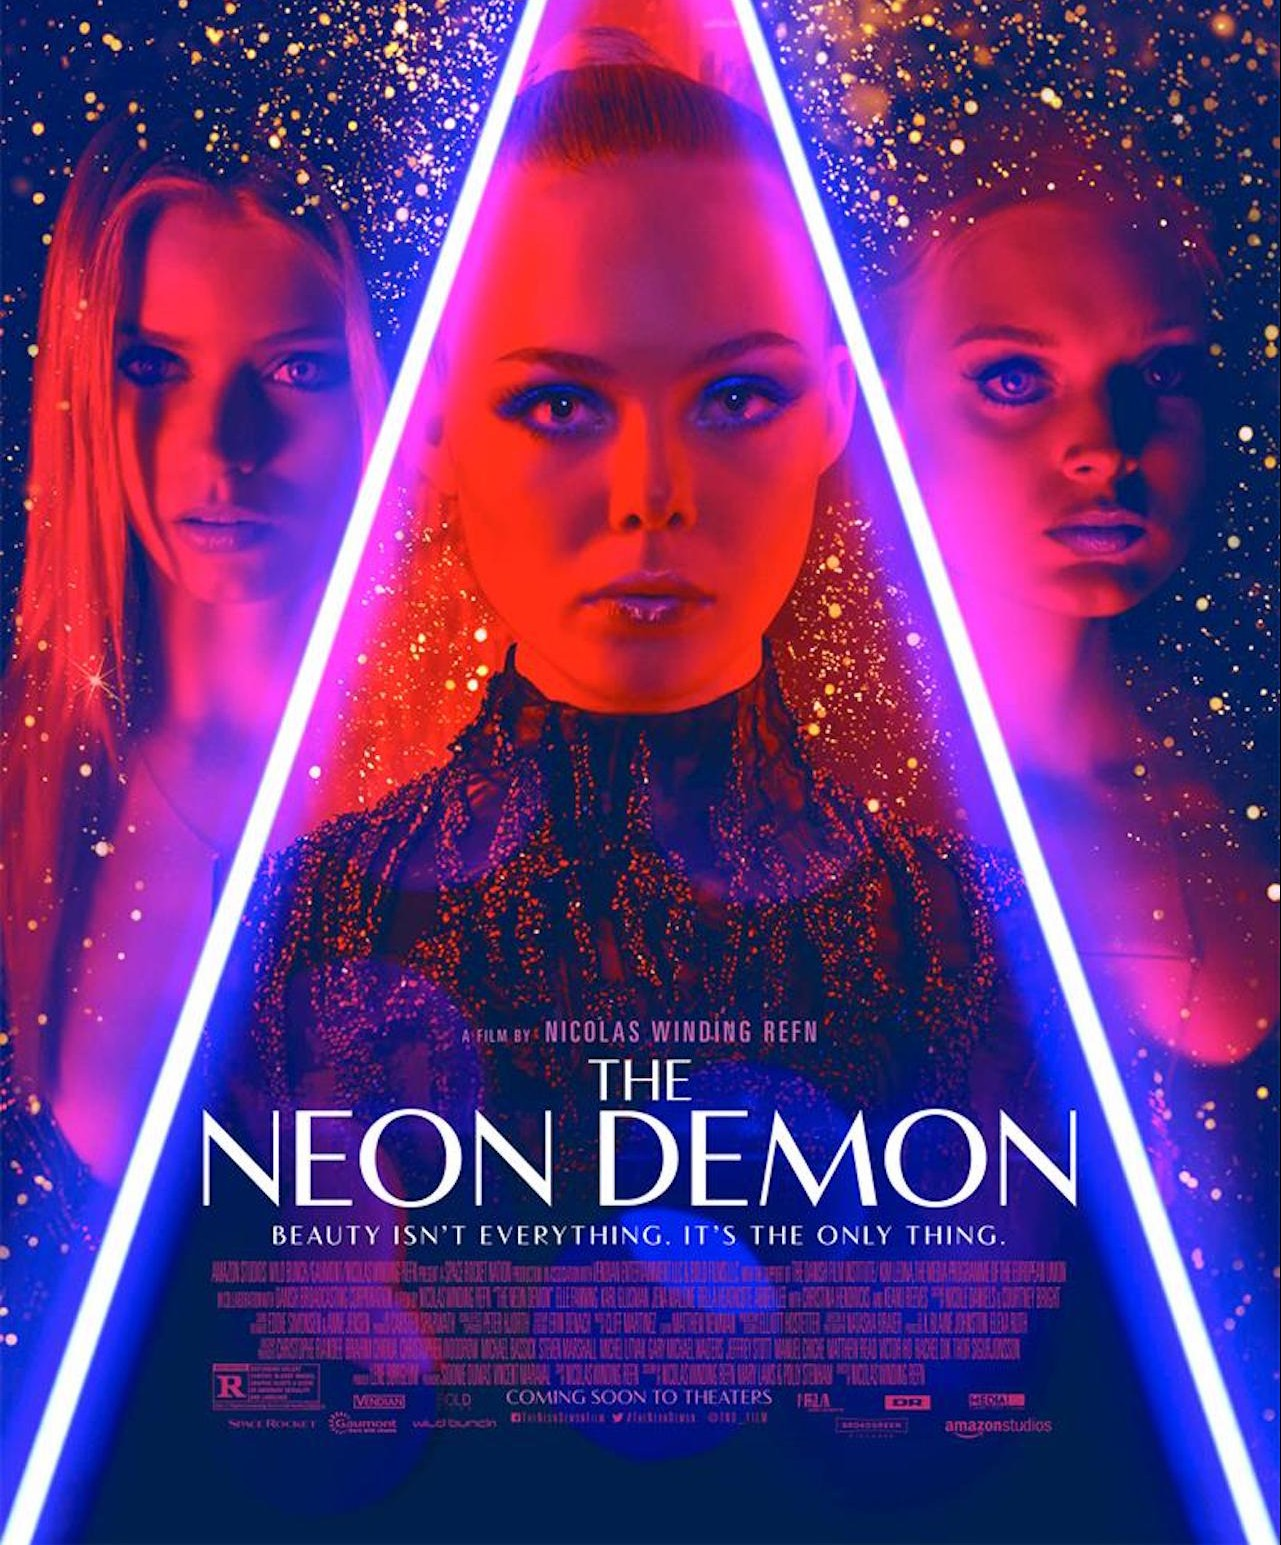 Q&A with The Neon Demon screenwriter Polly Stenham